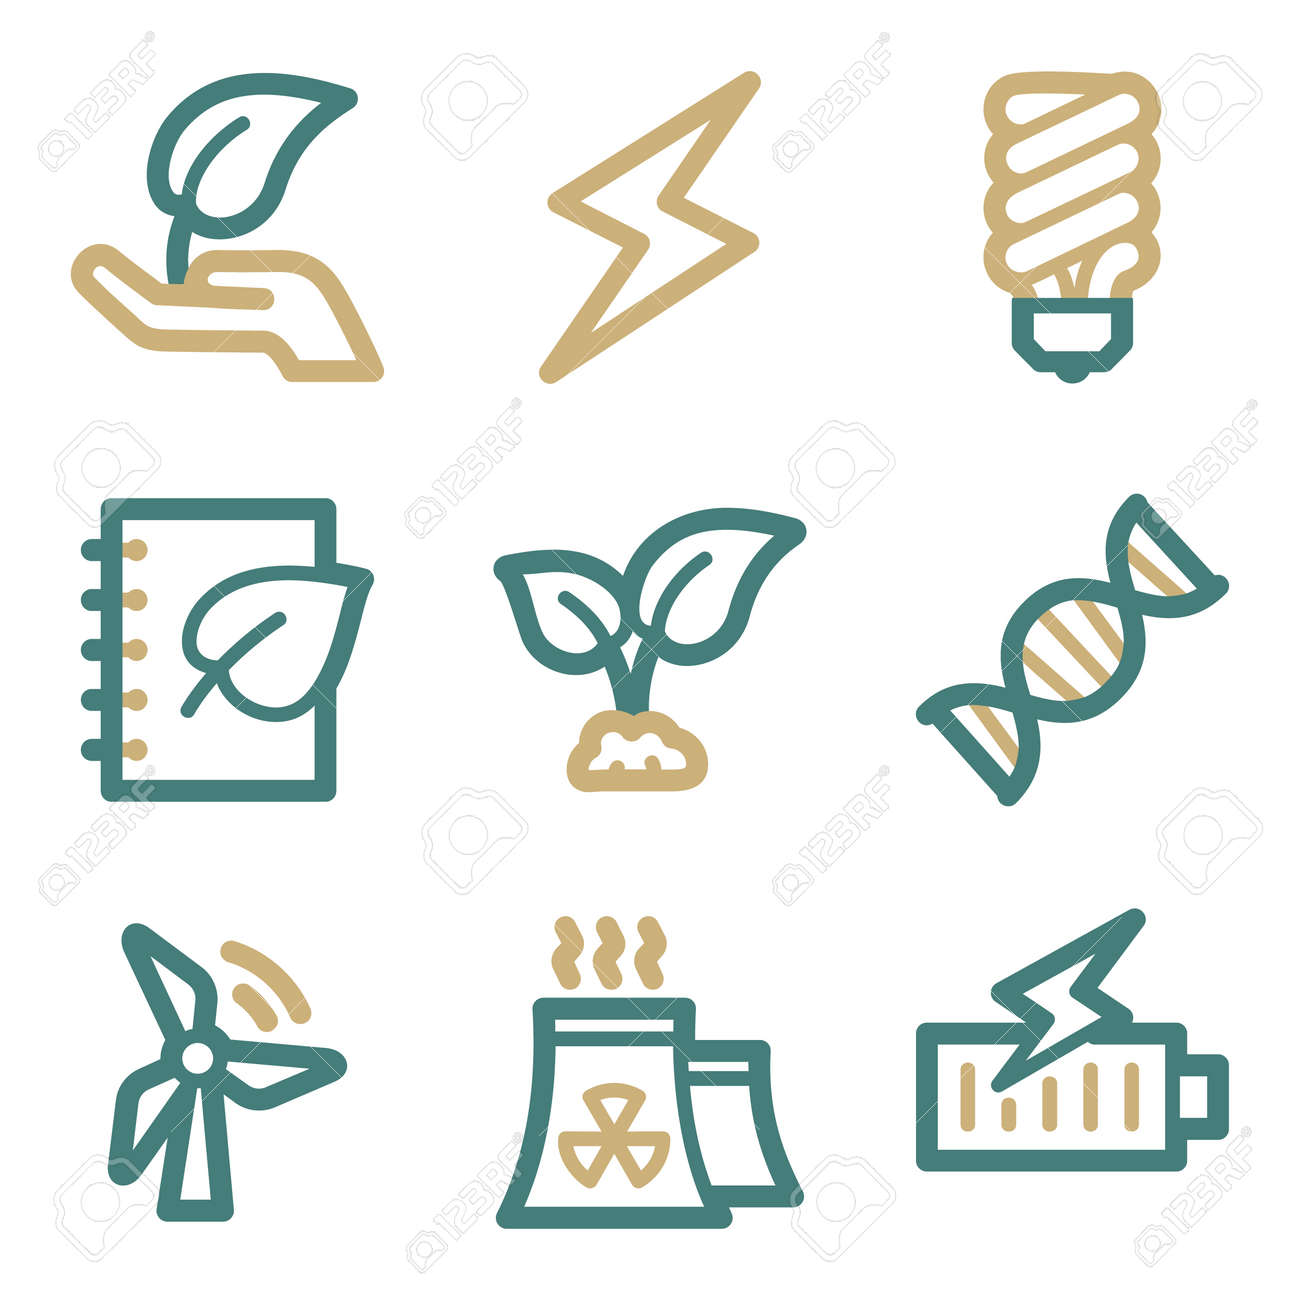 Ecology web icons, two color series Stock Vector - 25592871